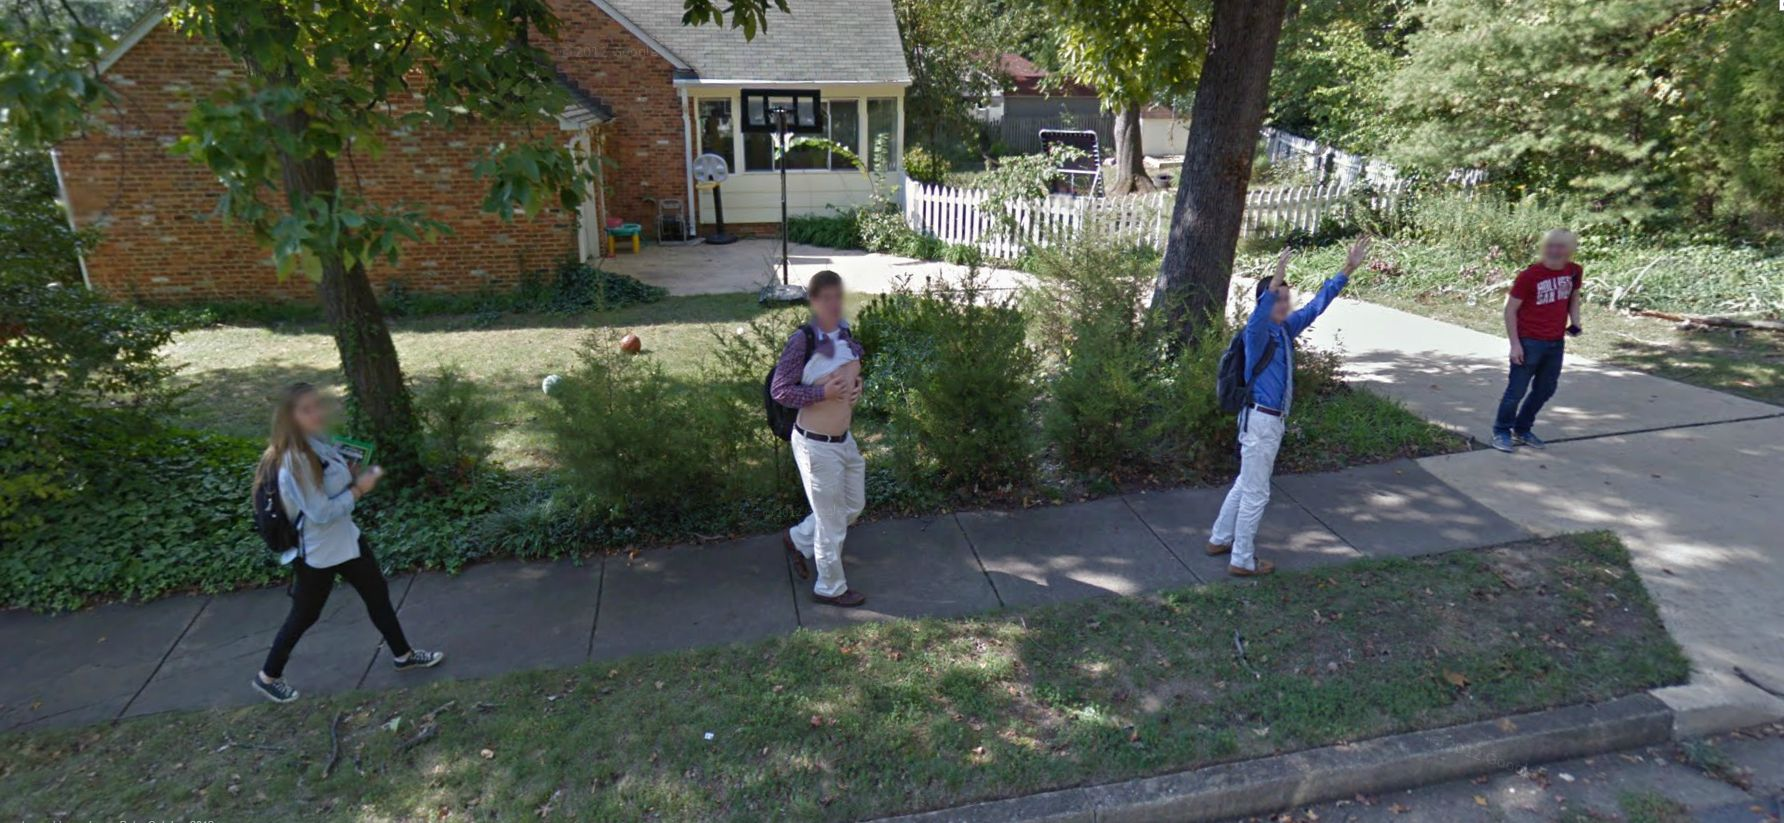 Google Street View Gets Flashed!